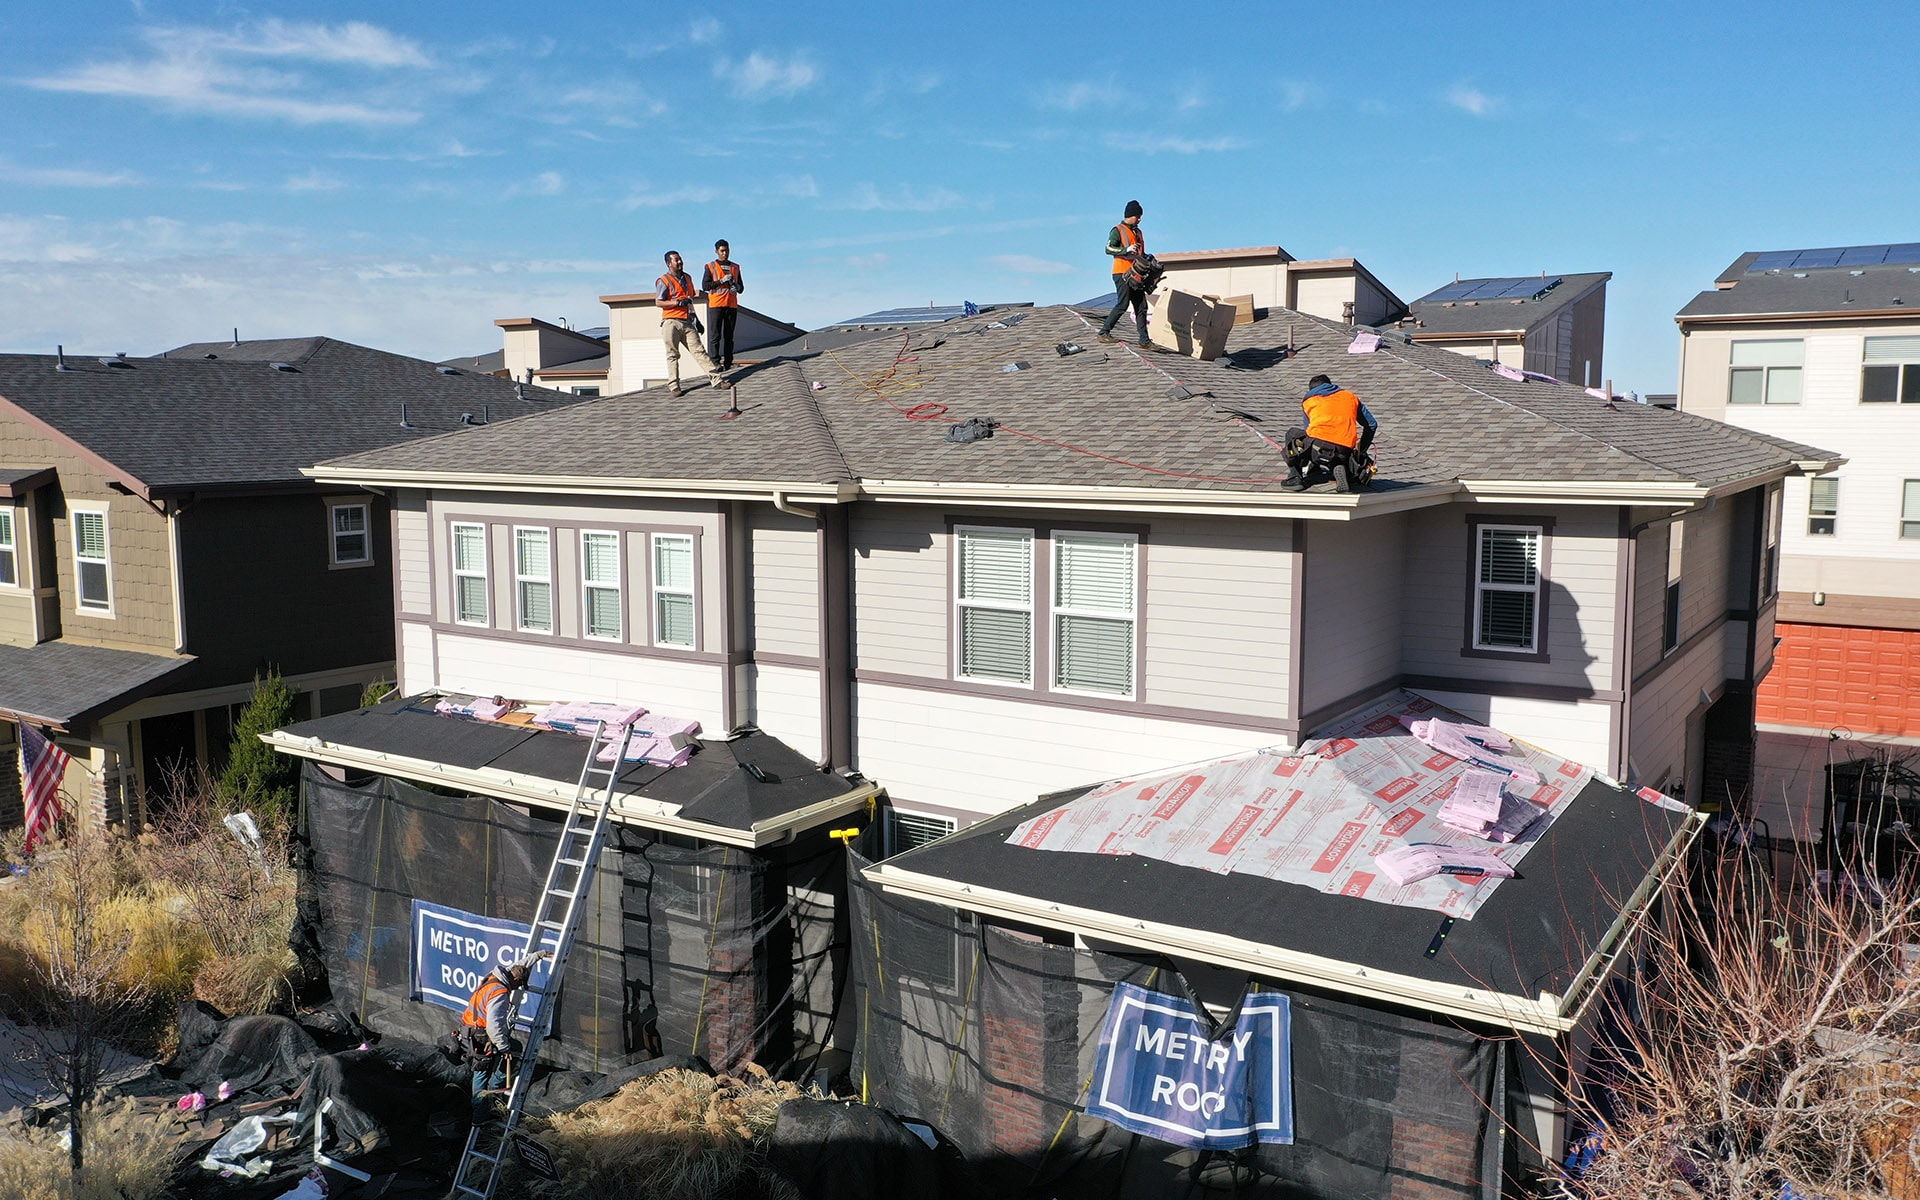 Metro City Roofing crew replacing the roof of a duplex in Denver, Colorado with five crew members working in orange vests with landscape protection kit in the front of the duplex